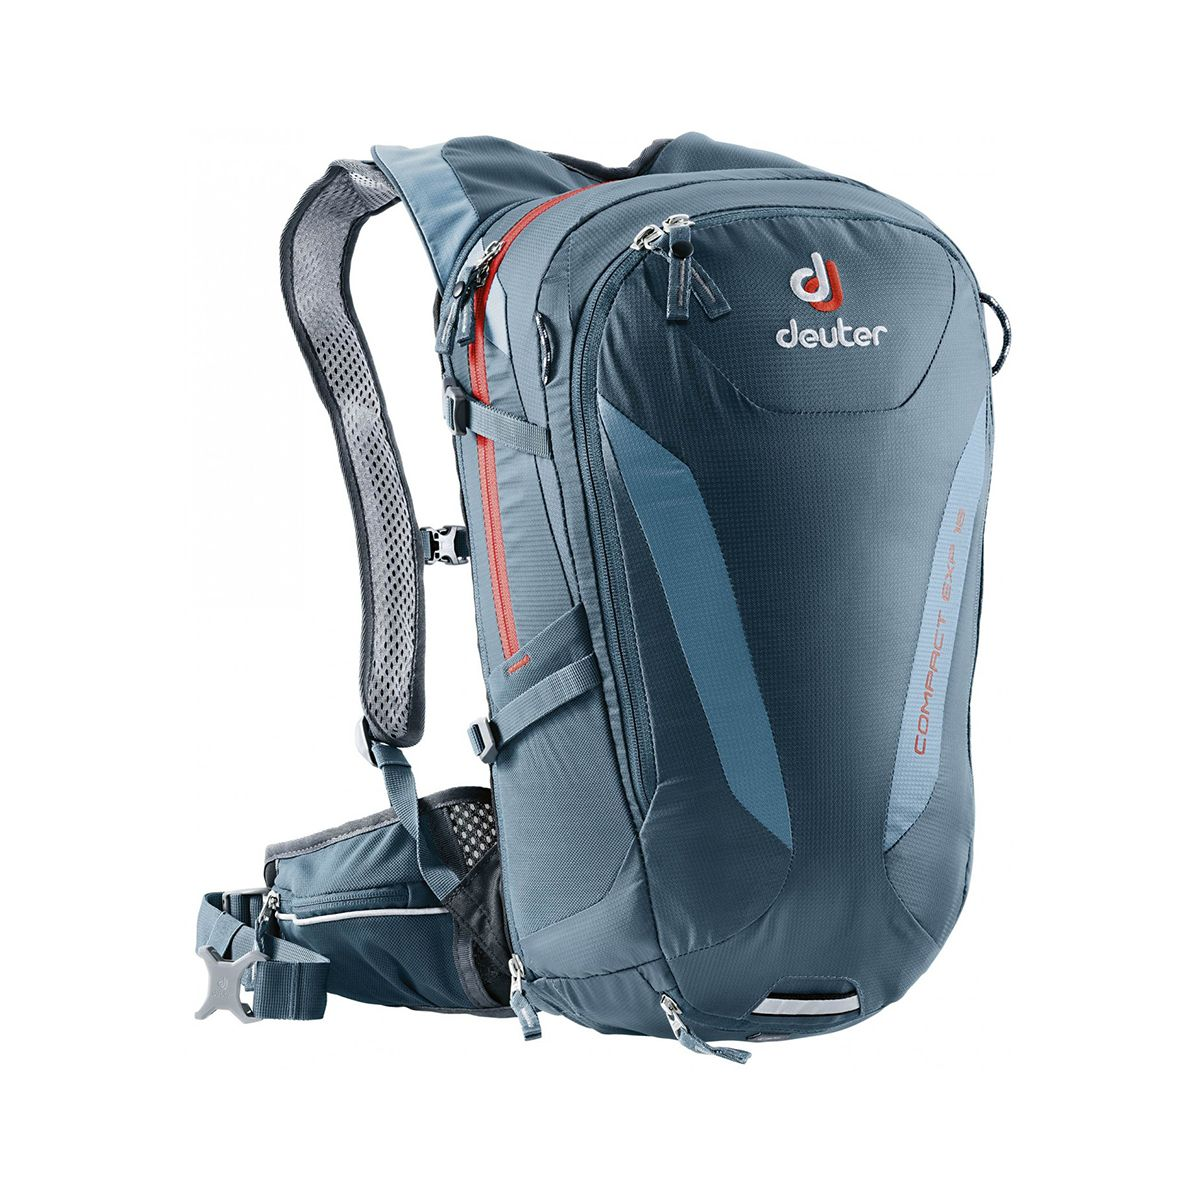 COMPACT EXP 16 Rucksack